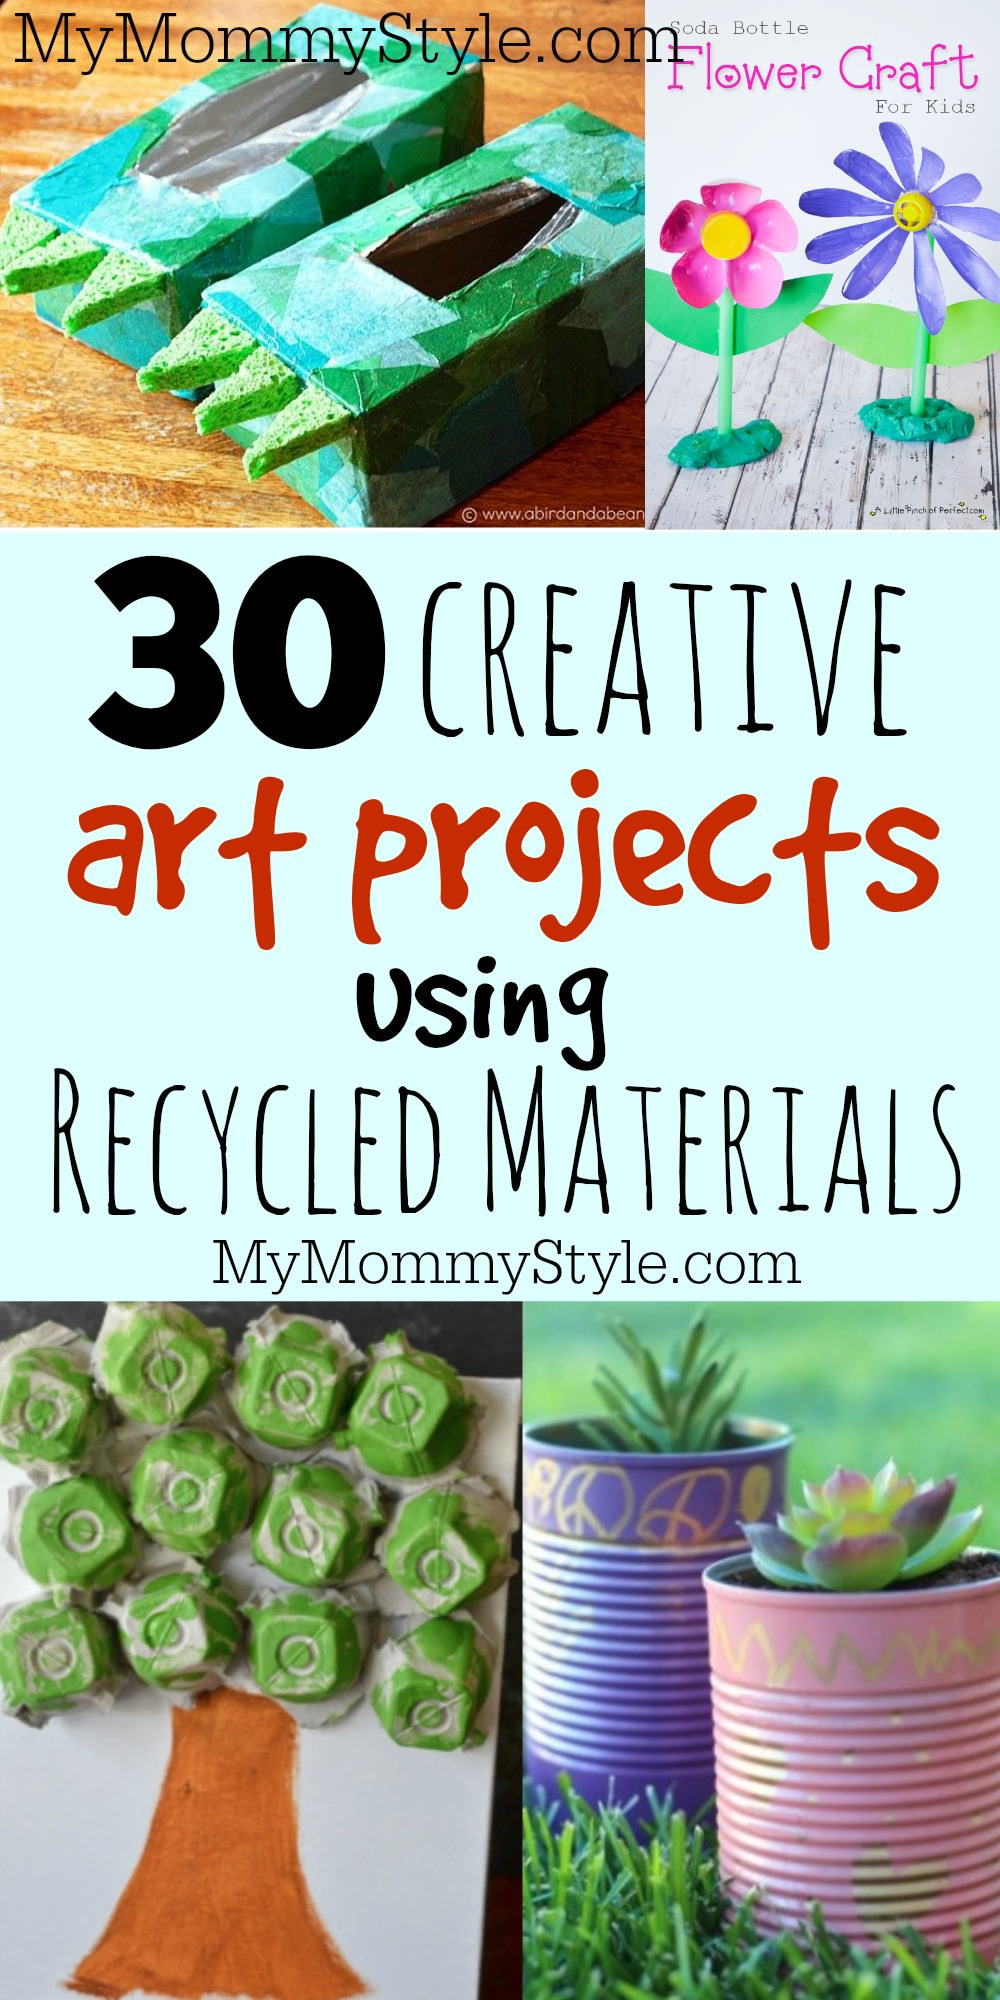 Skip the store and find supplies around the house to make these recycled art projects. 30 creative ideas will keep your kids busy crafting for a long time. via @mymommystyle